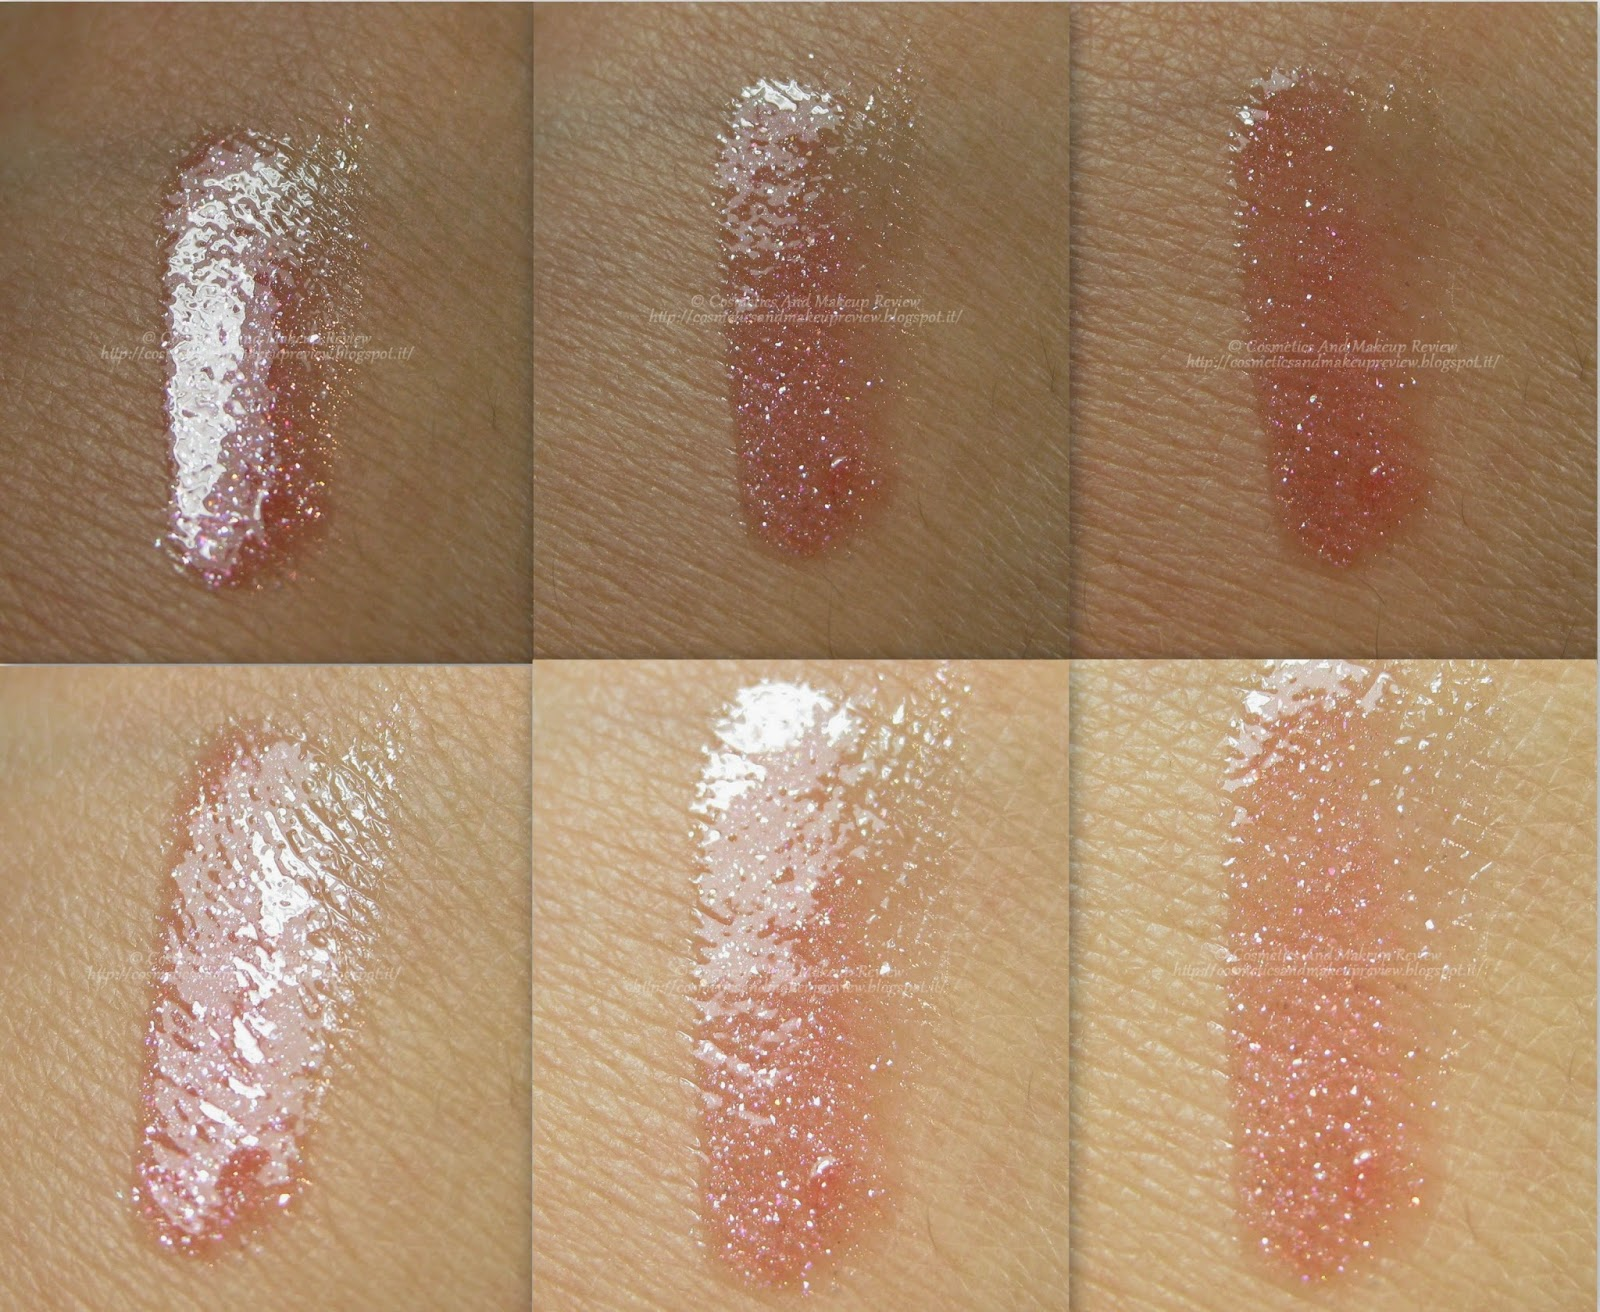 Labo LED Make-Up - Lipgloss 07 Rosa Simplicity - swatches (in  ombra in alto, alla luce in basso)